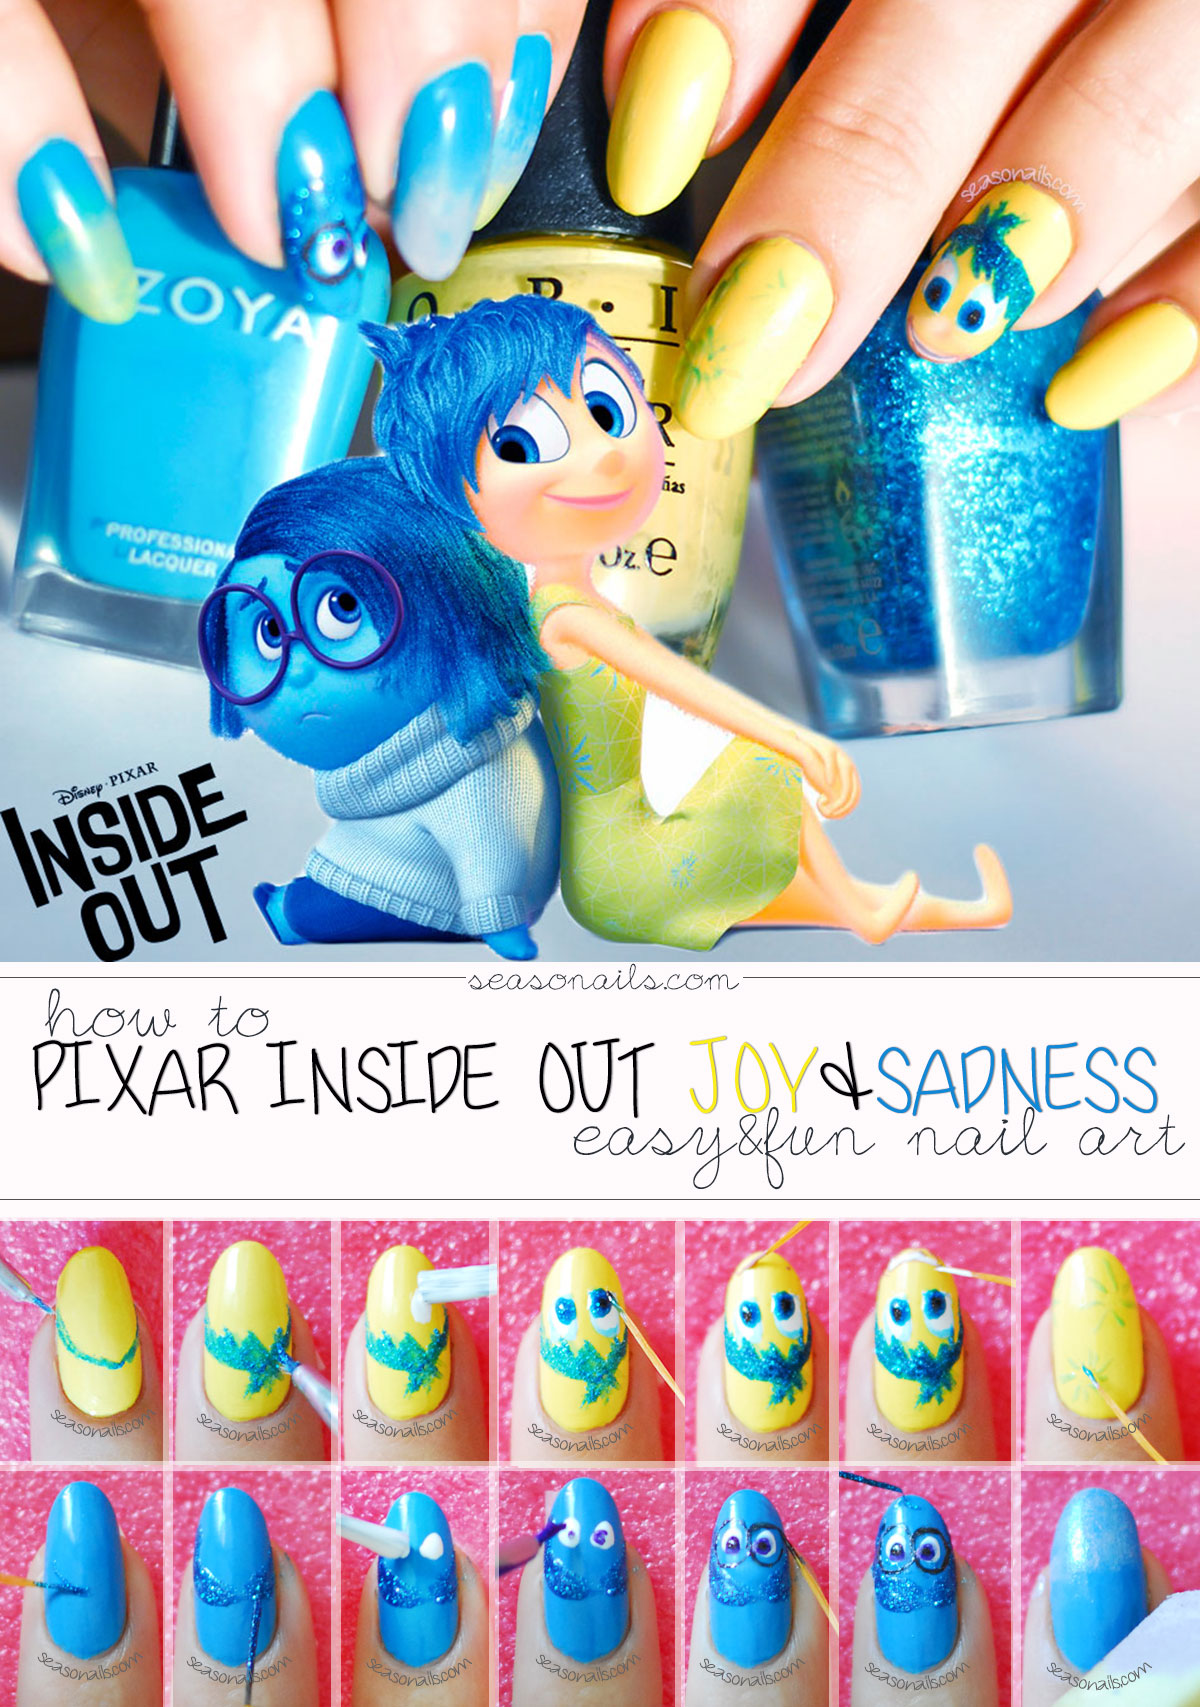 pixar inside out joy sadness nails how to tutorial nail art